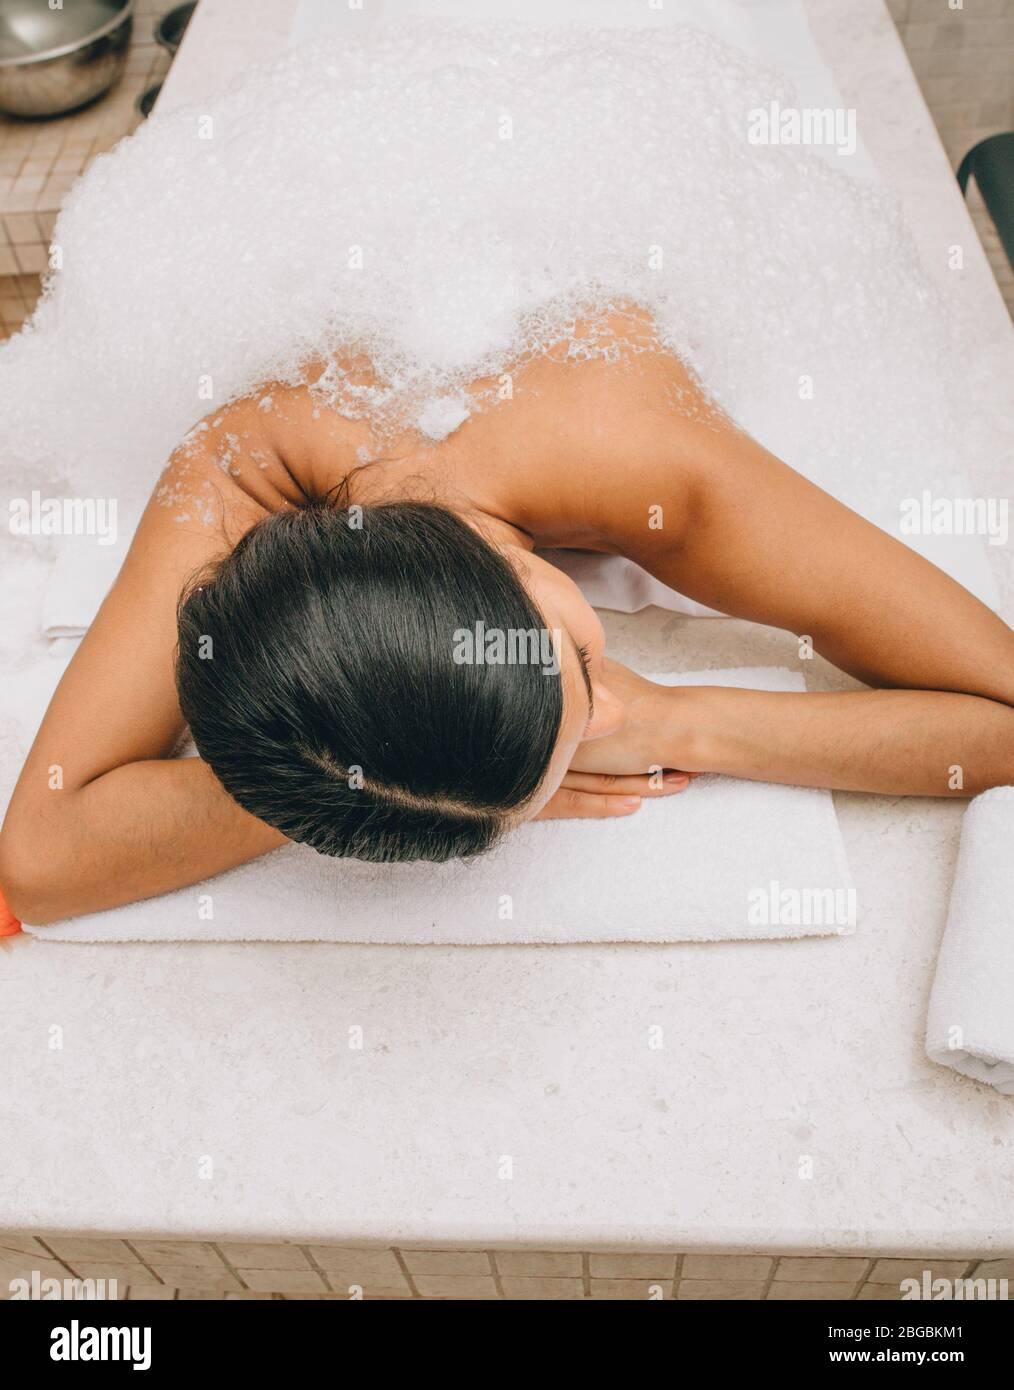 Soap massage of a beautiful woman in a hammam, top view. Procedures in the Turkish bath improves the skin and stops the aging process Stock Photo